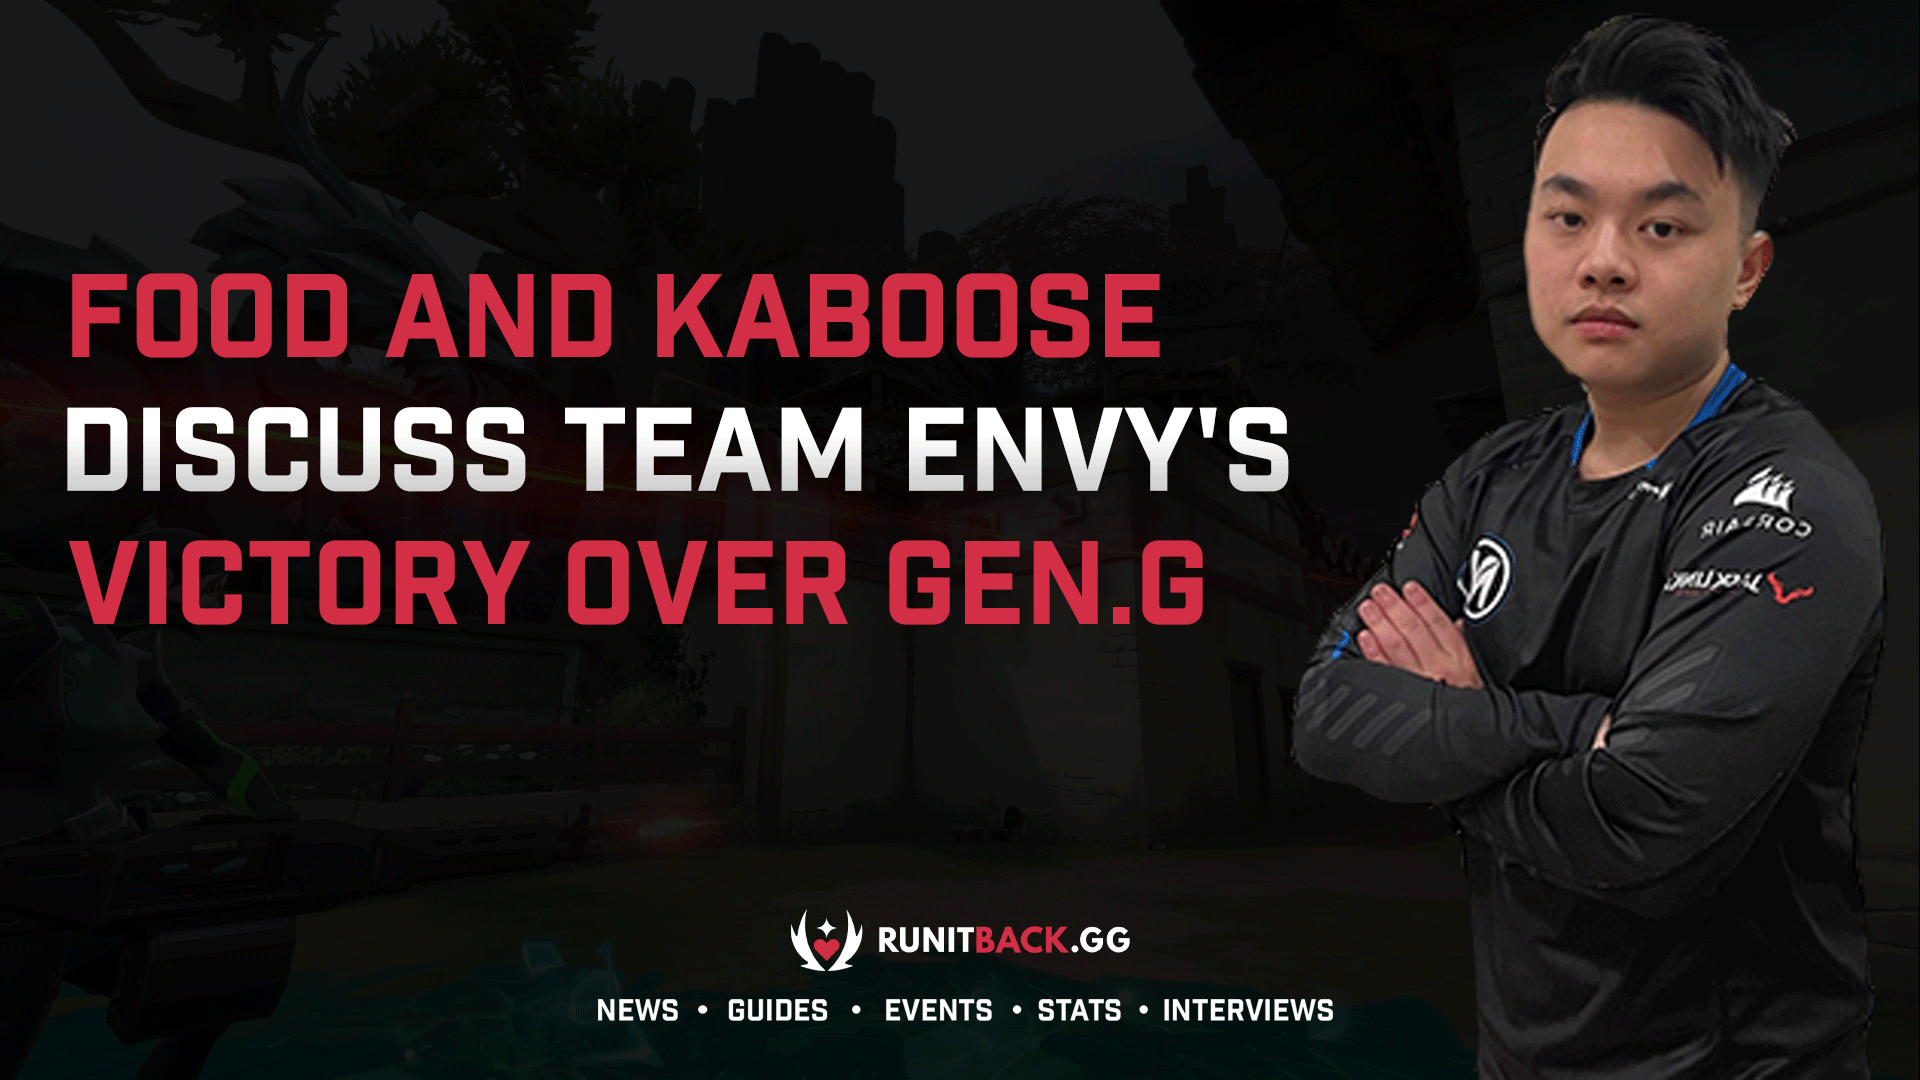 food and kaboose of Team Envy discuss victory over Gen.G